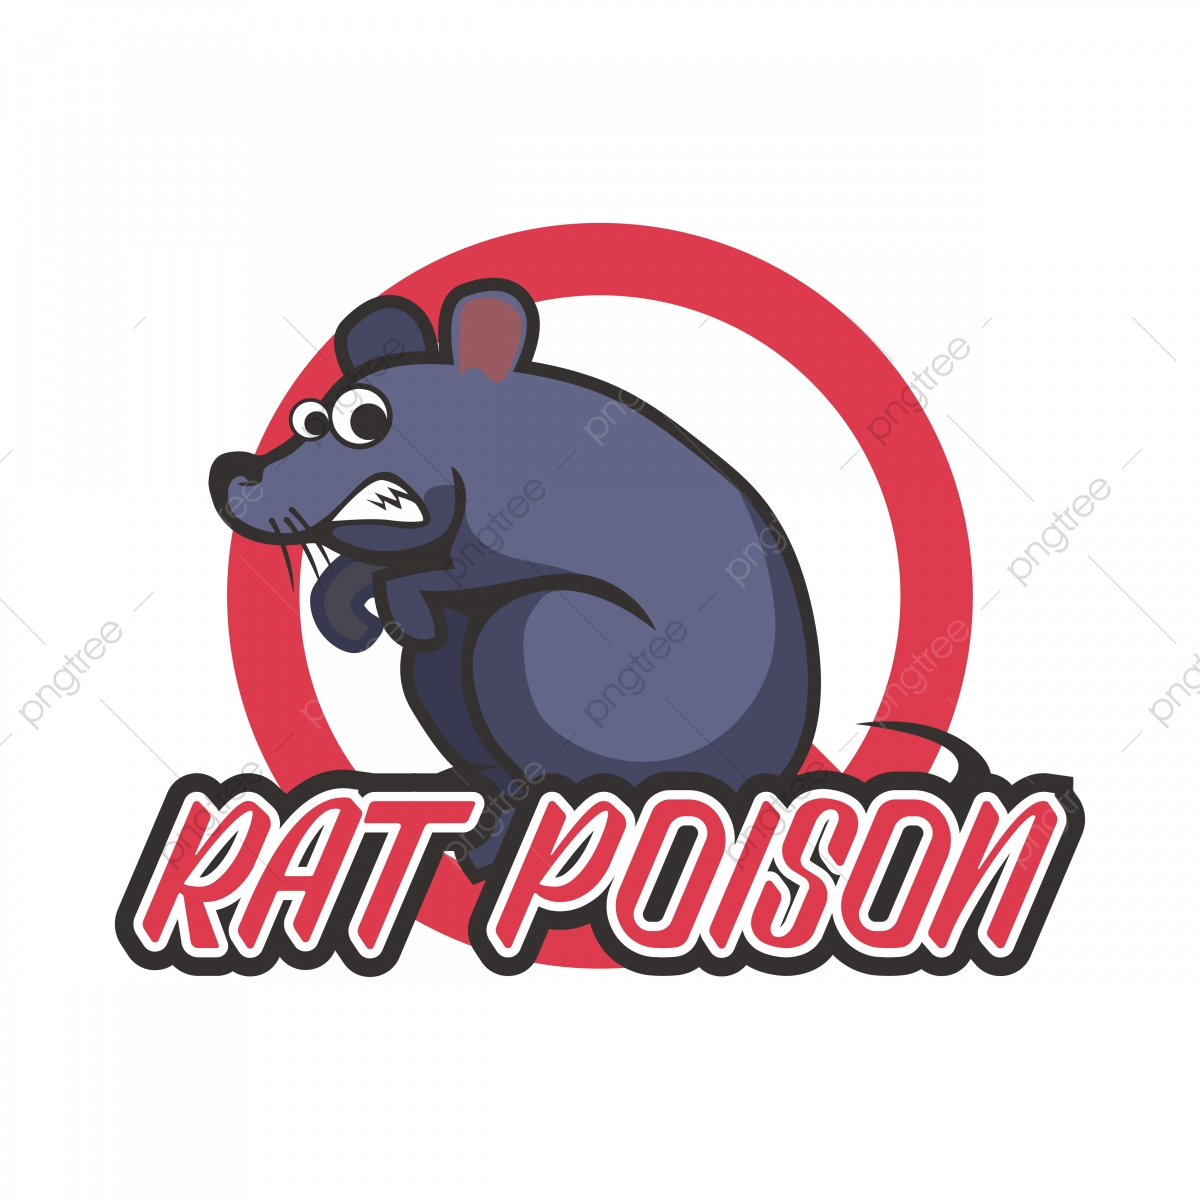 Mouse Poison Abstract Fonts With Red Circles, Rats, Rat.